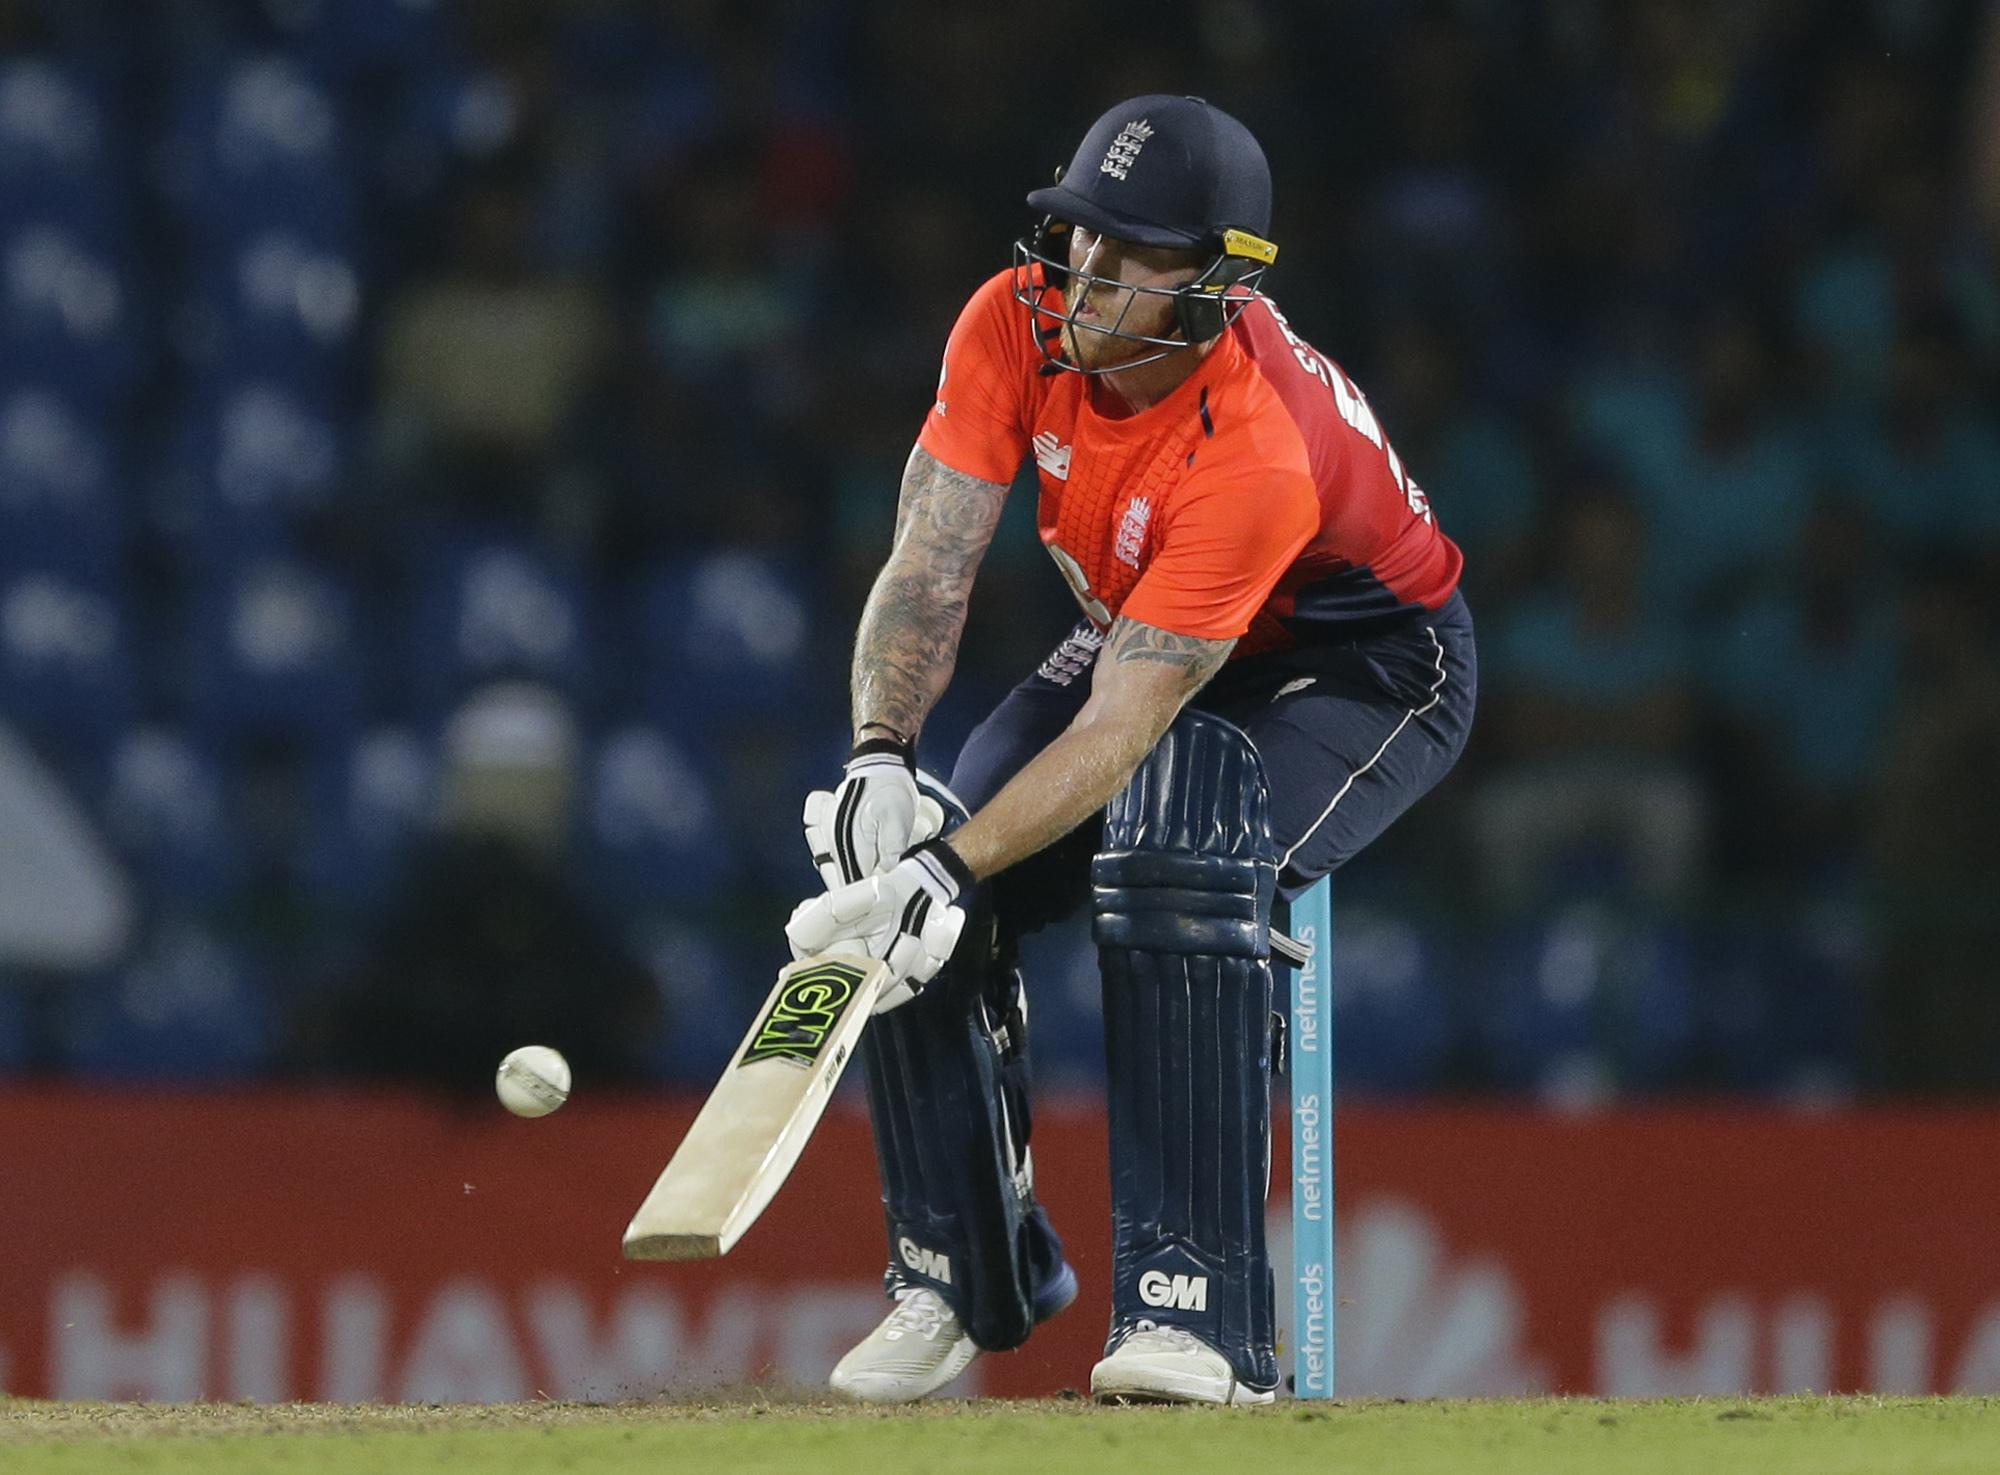 Ben Stokes fared well with bat and ball in the comprehensive win